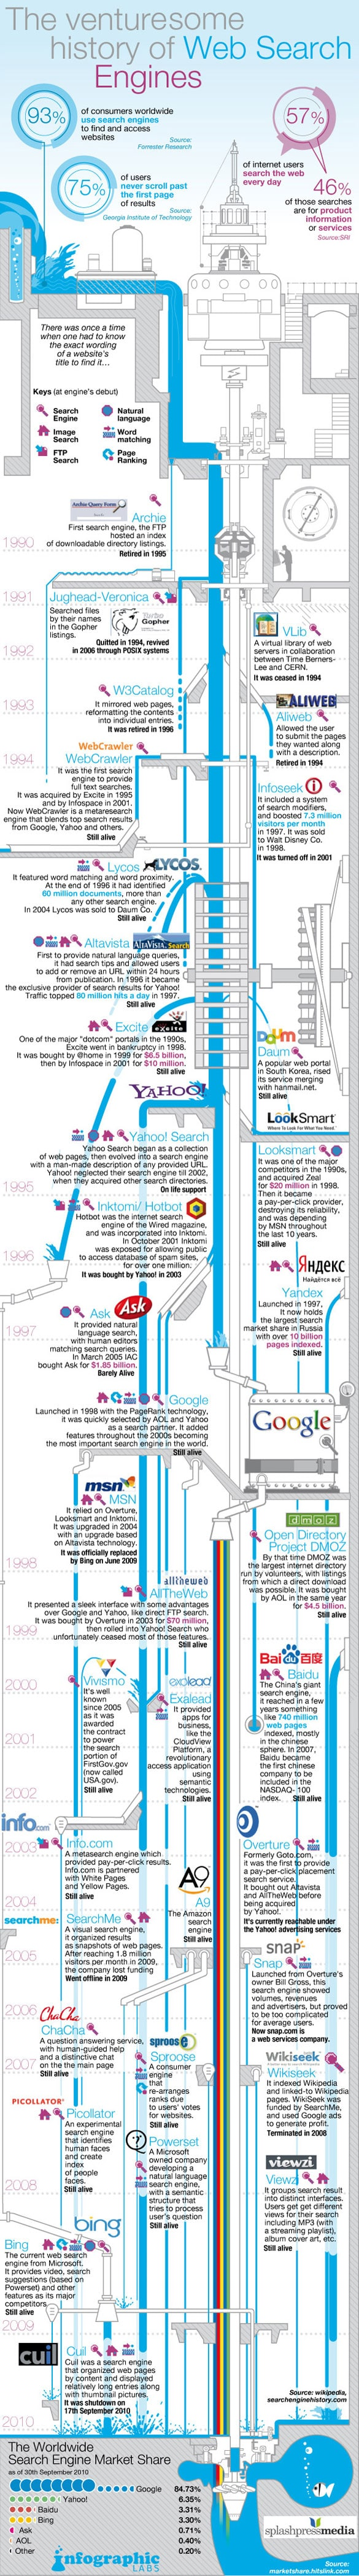 Search Engine Facts: Full Historical Timeline [Infographic]